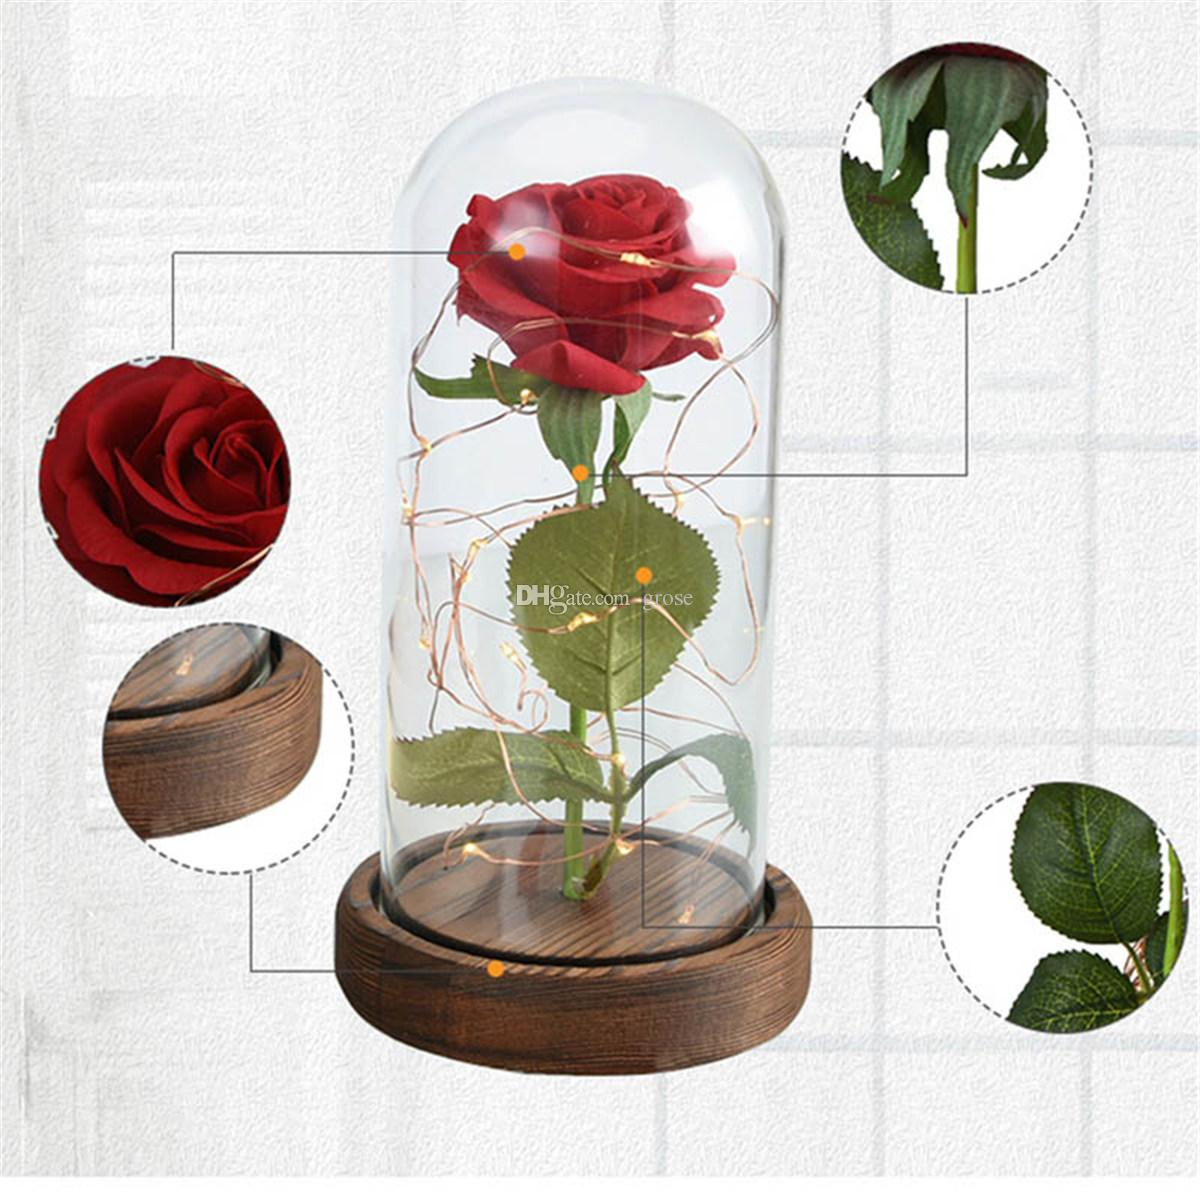 2018 new wr beauty beast red rose in a glass dome on a wooden base 2018 new wr beauty beast red rose in a glass dome on a wooden base for valentines gifts 0708174 from grose 2061 dhgate izmirmasajfo